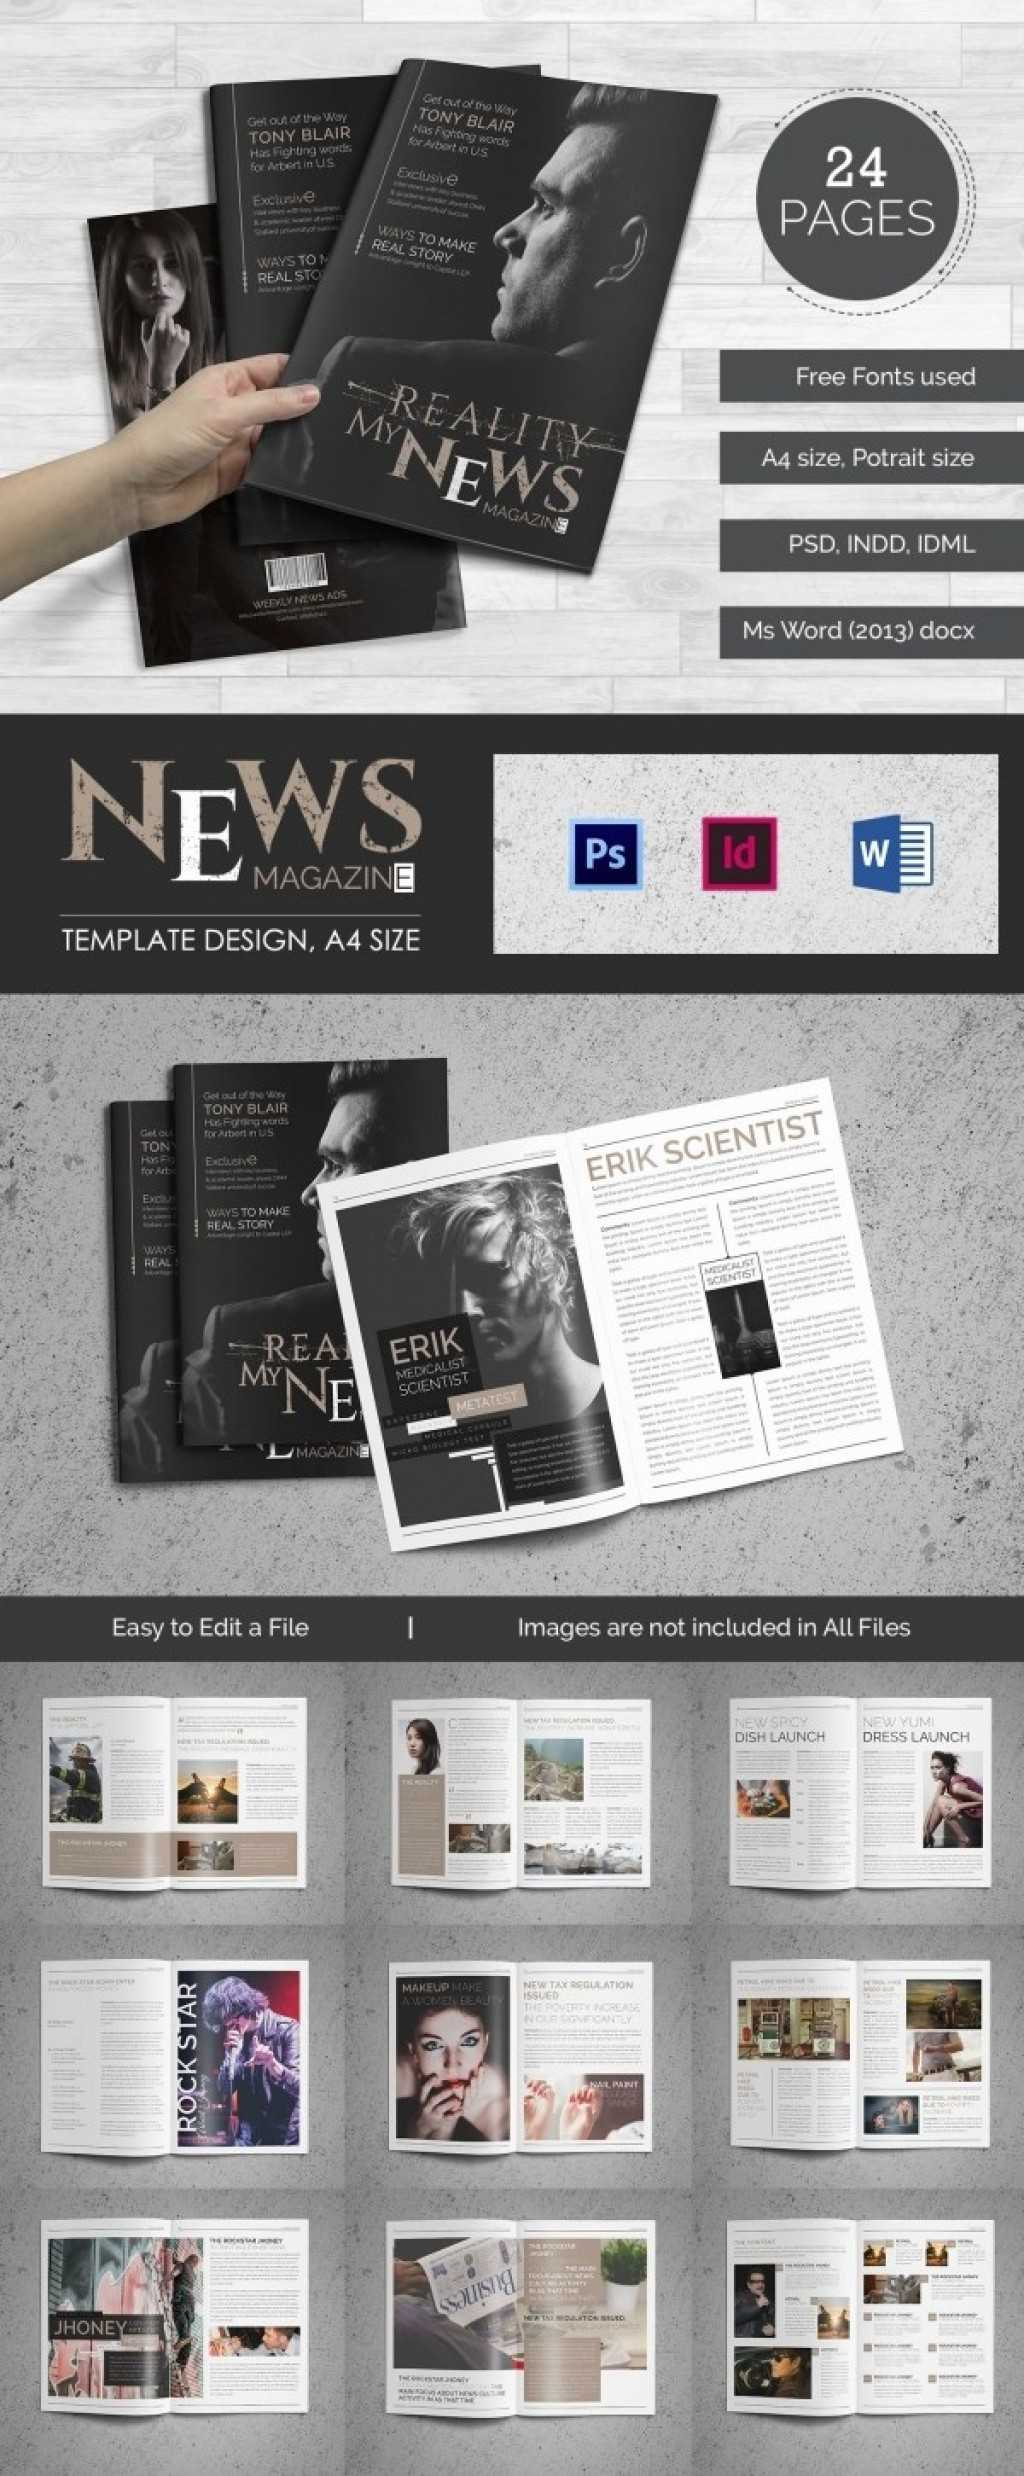 025 Template Ideas Magazine Free Word 4 R Unforgettable with regard to Magazine Template For Microsoft Word